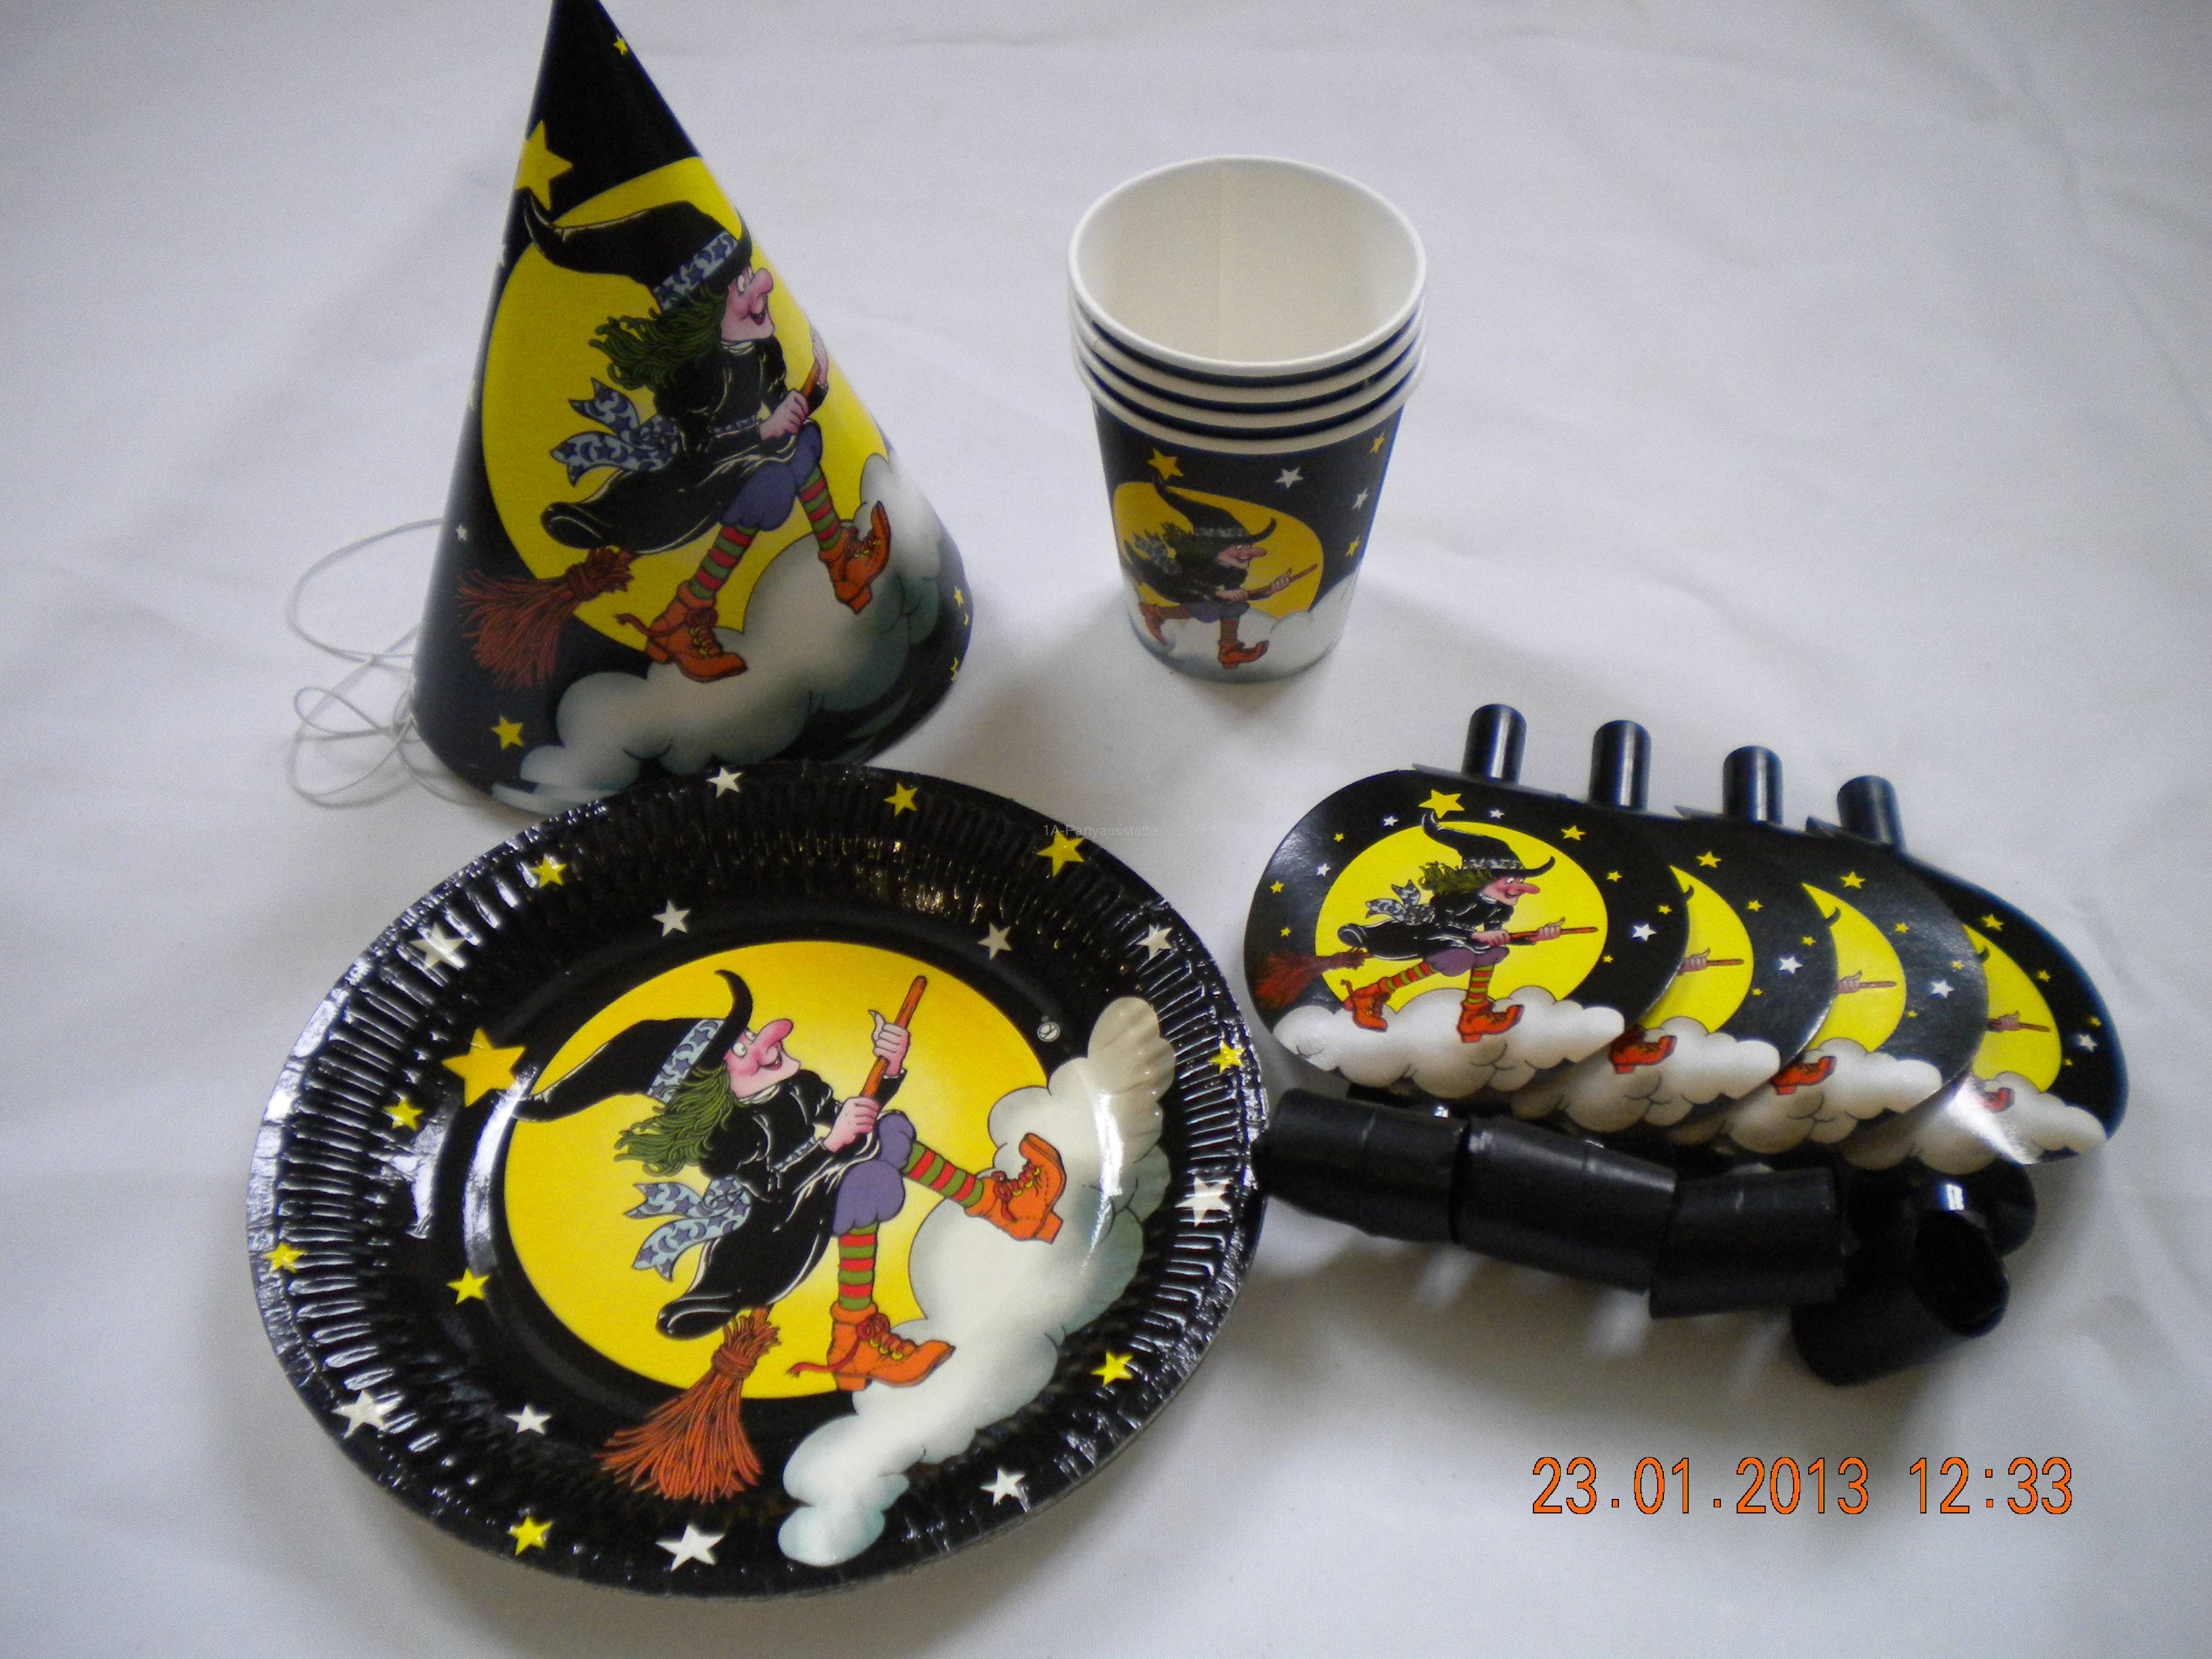 Party Set  Hexe Kinder Geburtstag Mottoparty